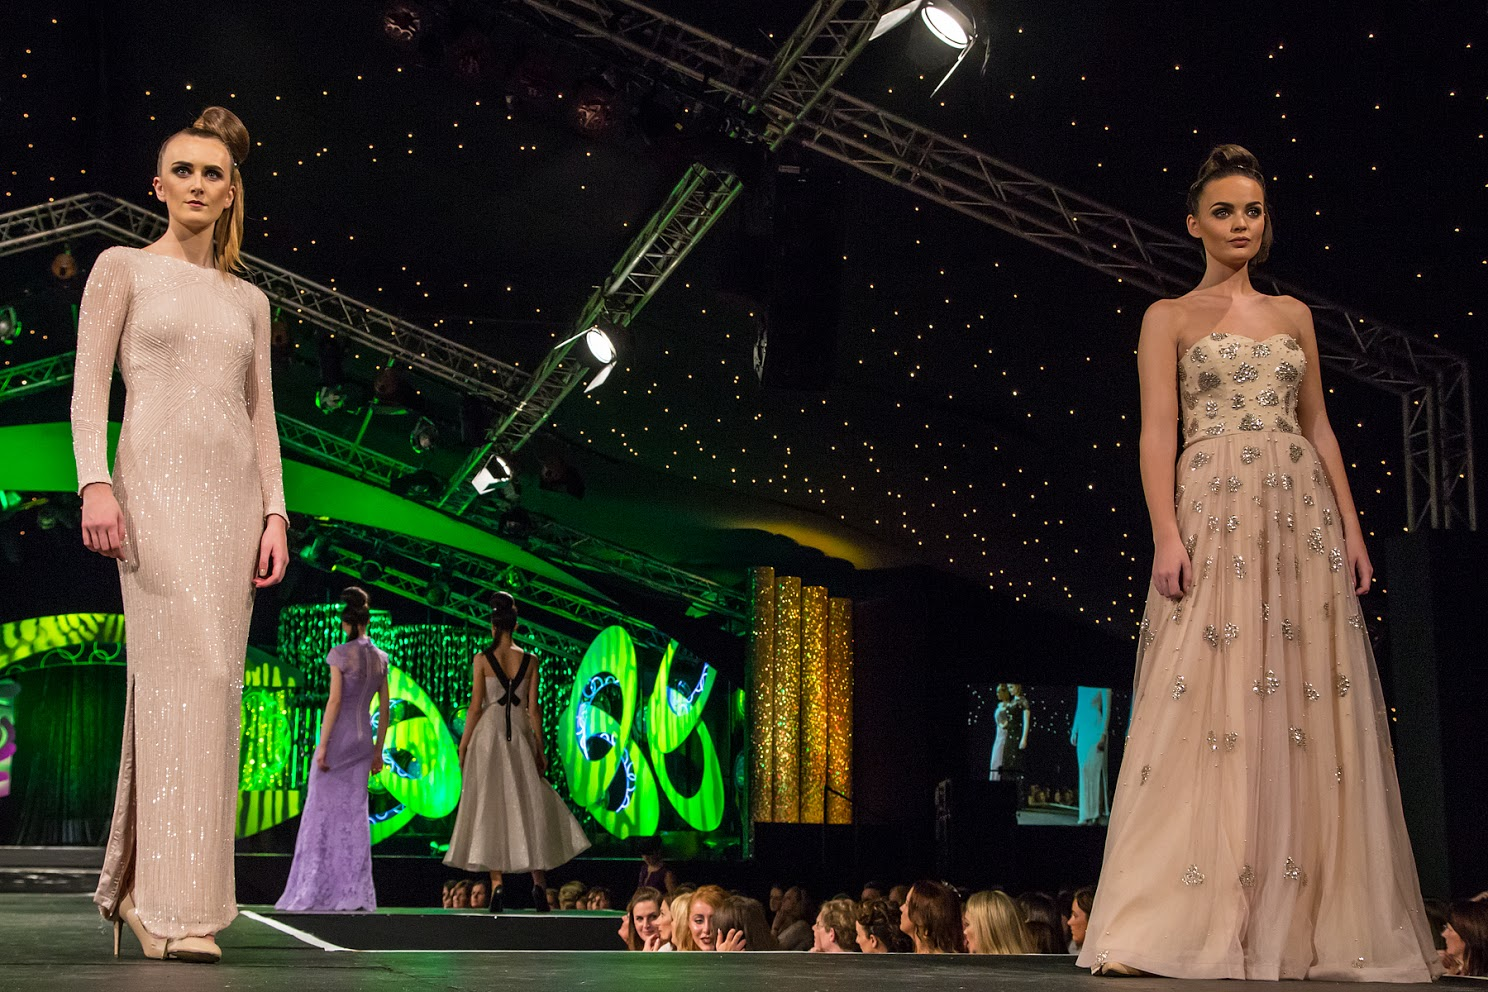 dolf_patijn_rose_of_tralee_fashion_16082015_0622